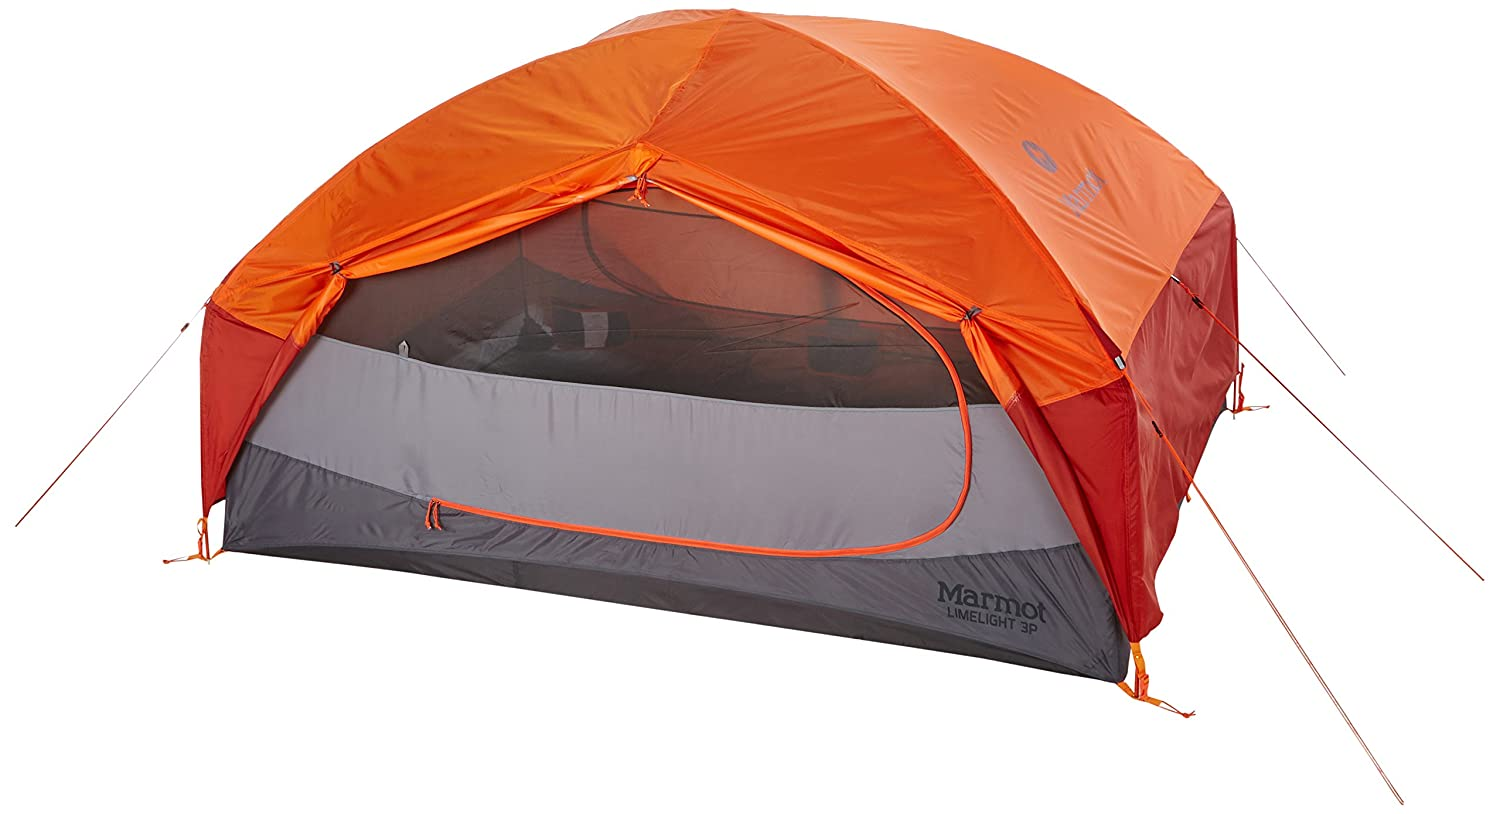 Amazon.com  Marmot Unisex Limelight 3P Tent Cinder/Rusted Orange Tent One Size  Sports u0026 Outdoors  sc 1 st  Amazon.com & Amazon.com : Marmot Unisex Limelight 3P Tent Cinder/Rusted Orange ...